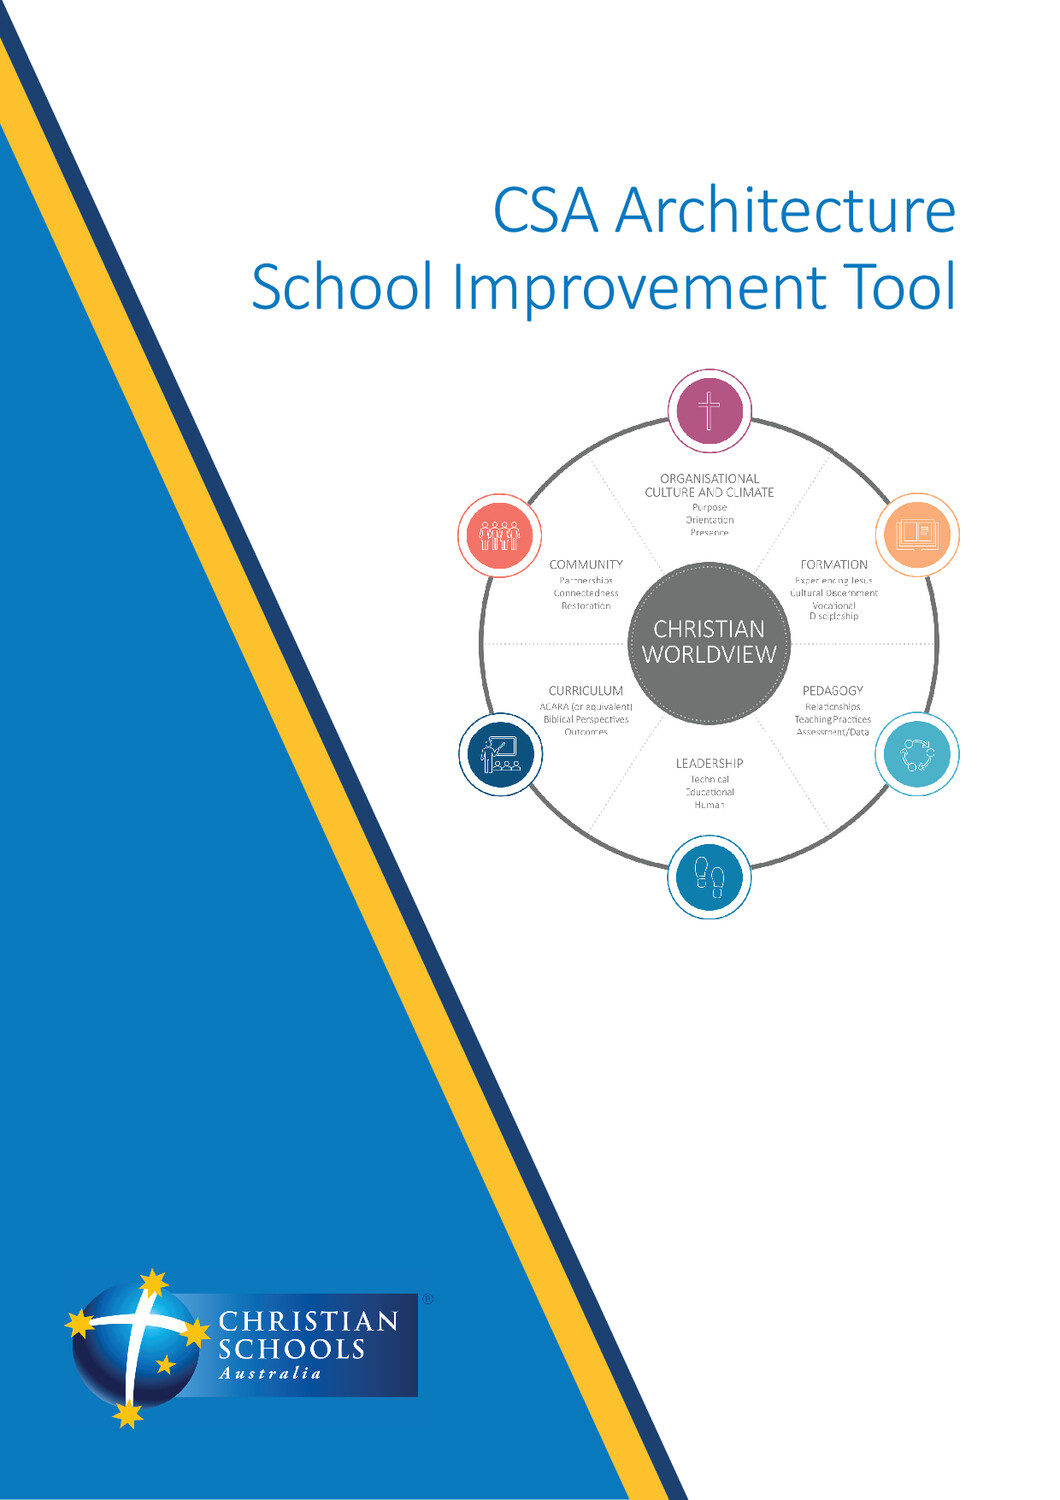 CSA Architecture School Improvement Tool